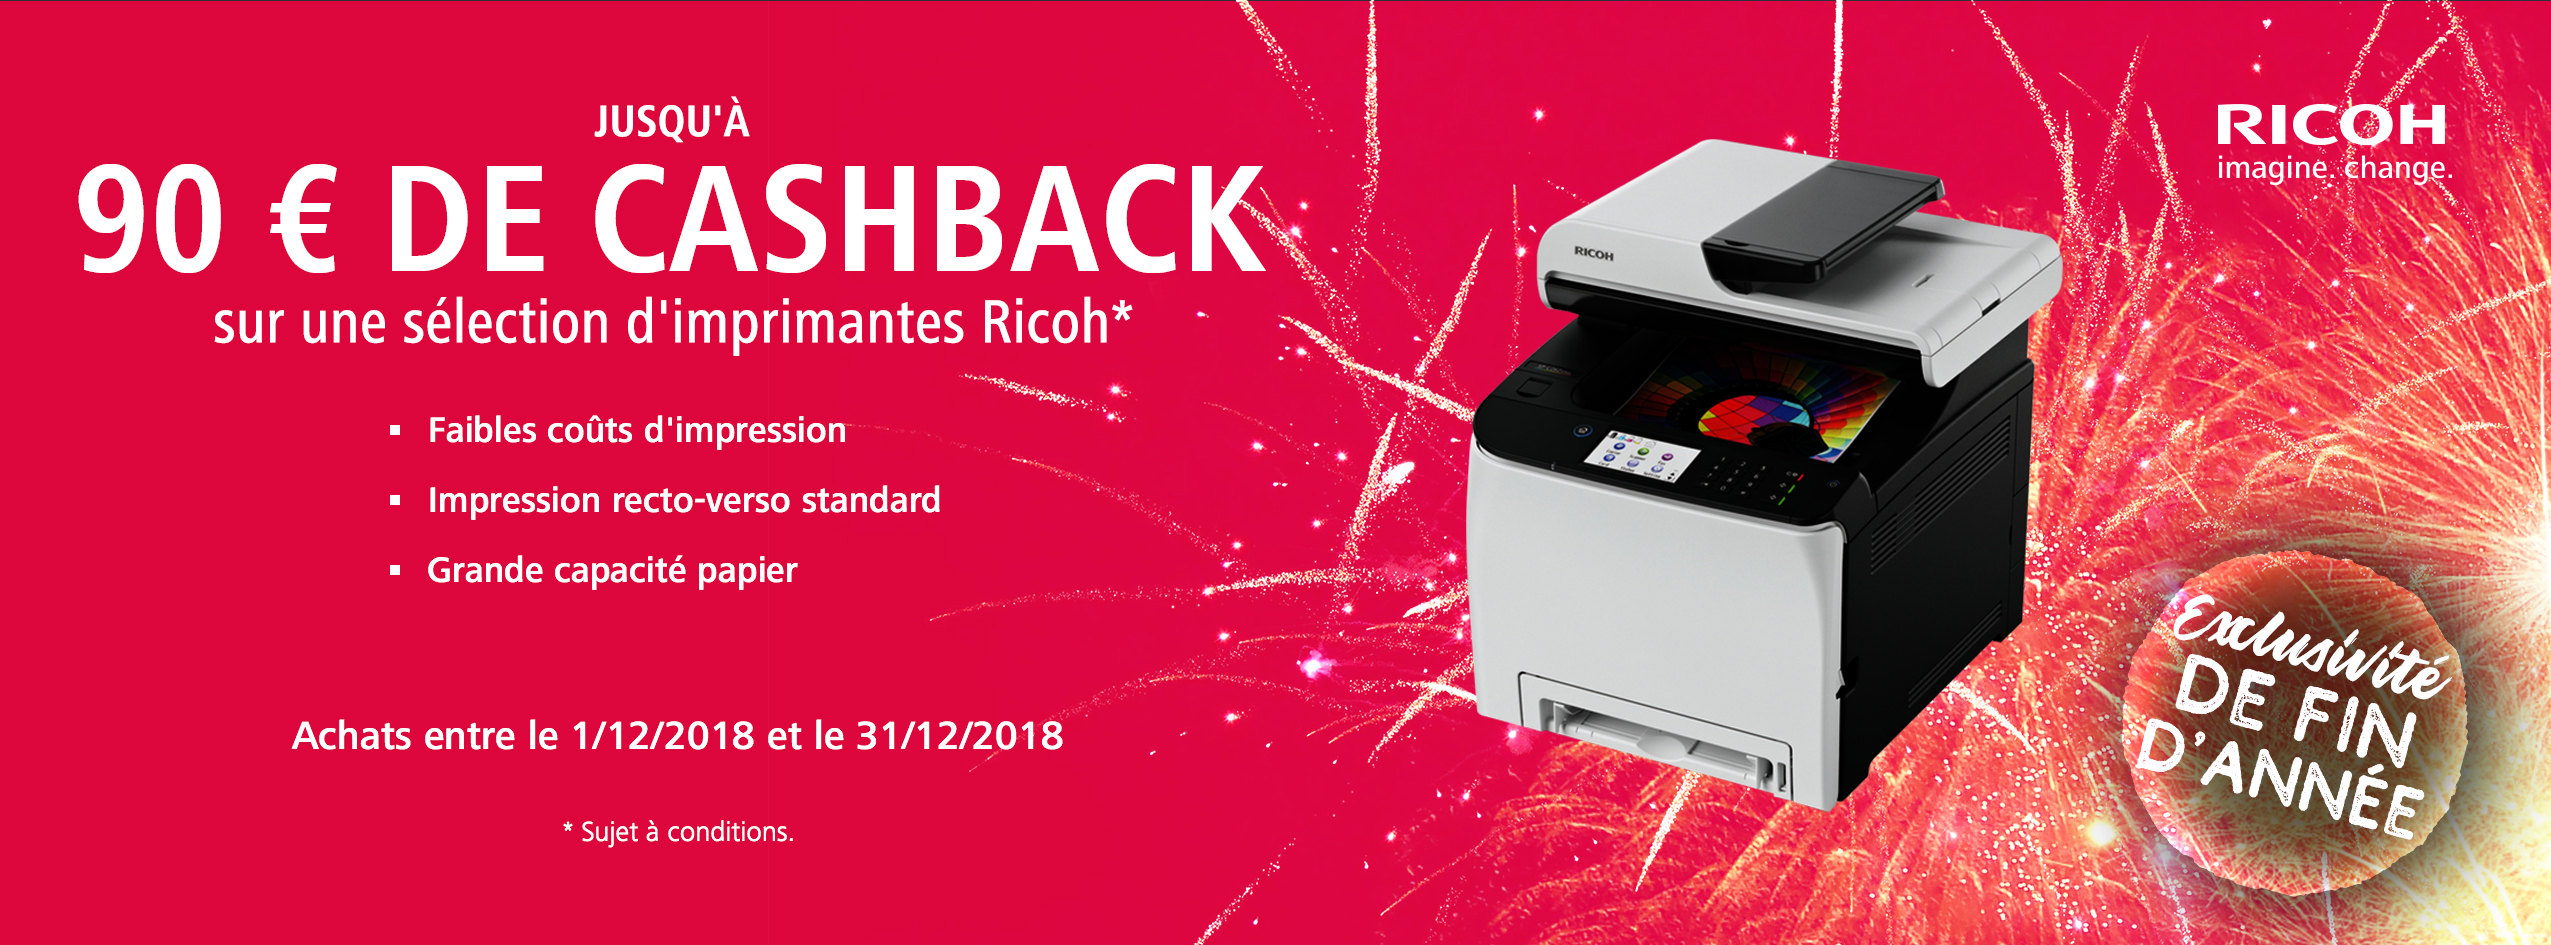 Ricoh End of Year Accelerator Cashback - FR